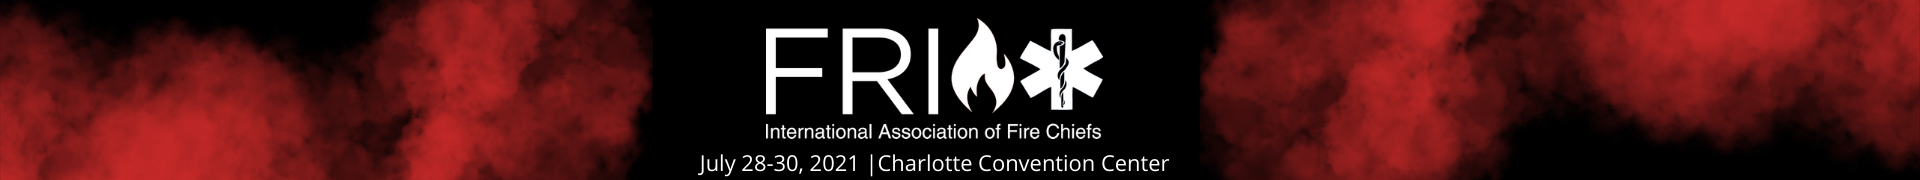 Fire-Rescue International 2021 Event Banner